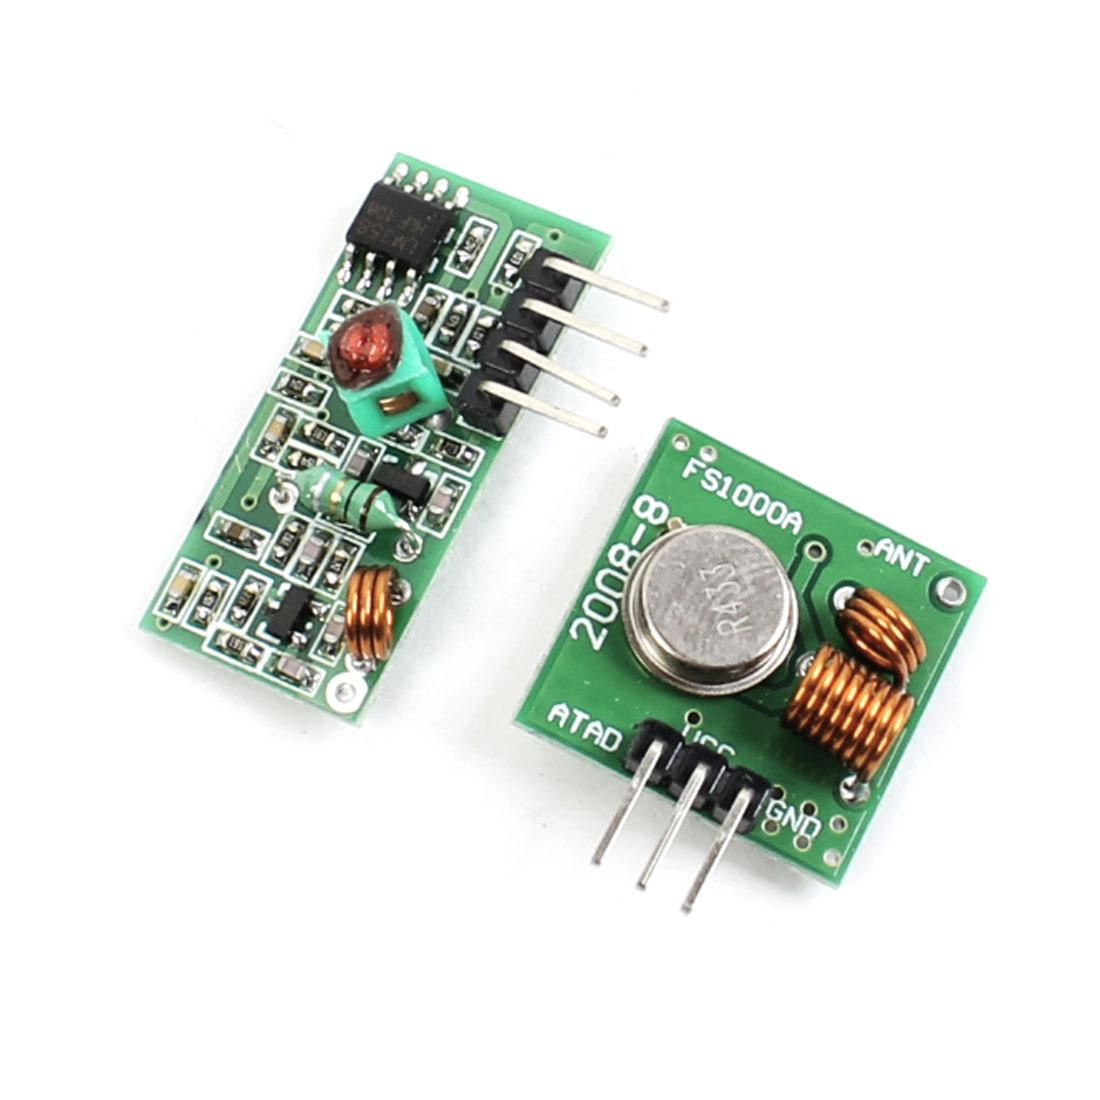 433mhz Rf Transmitter Receiver Arduino Supplier, Find